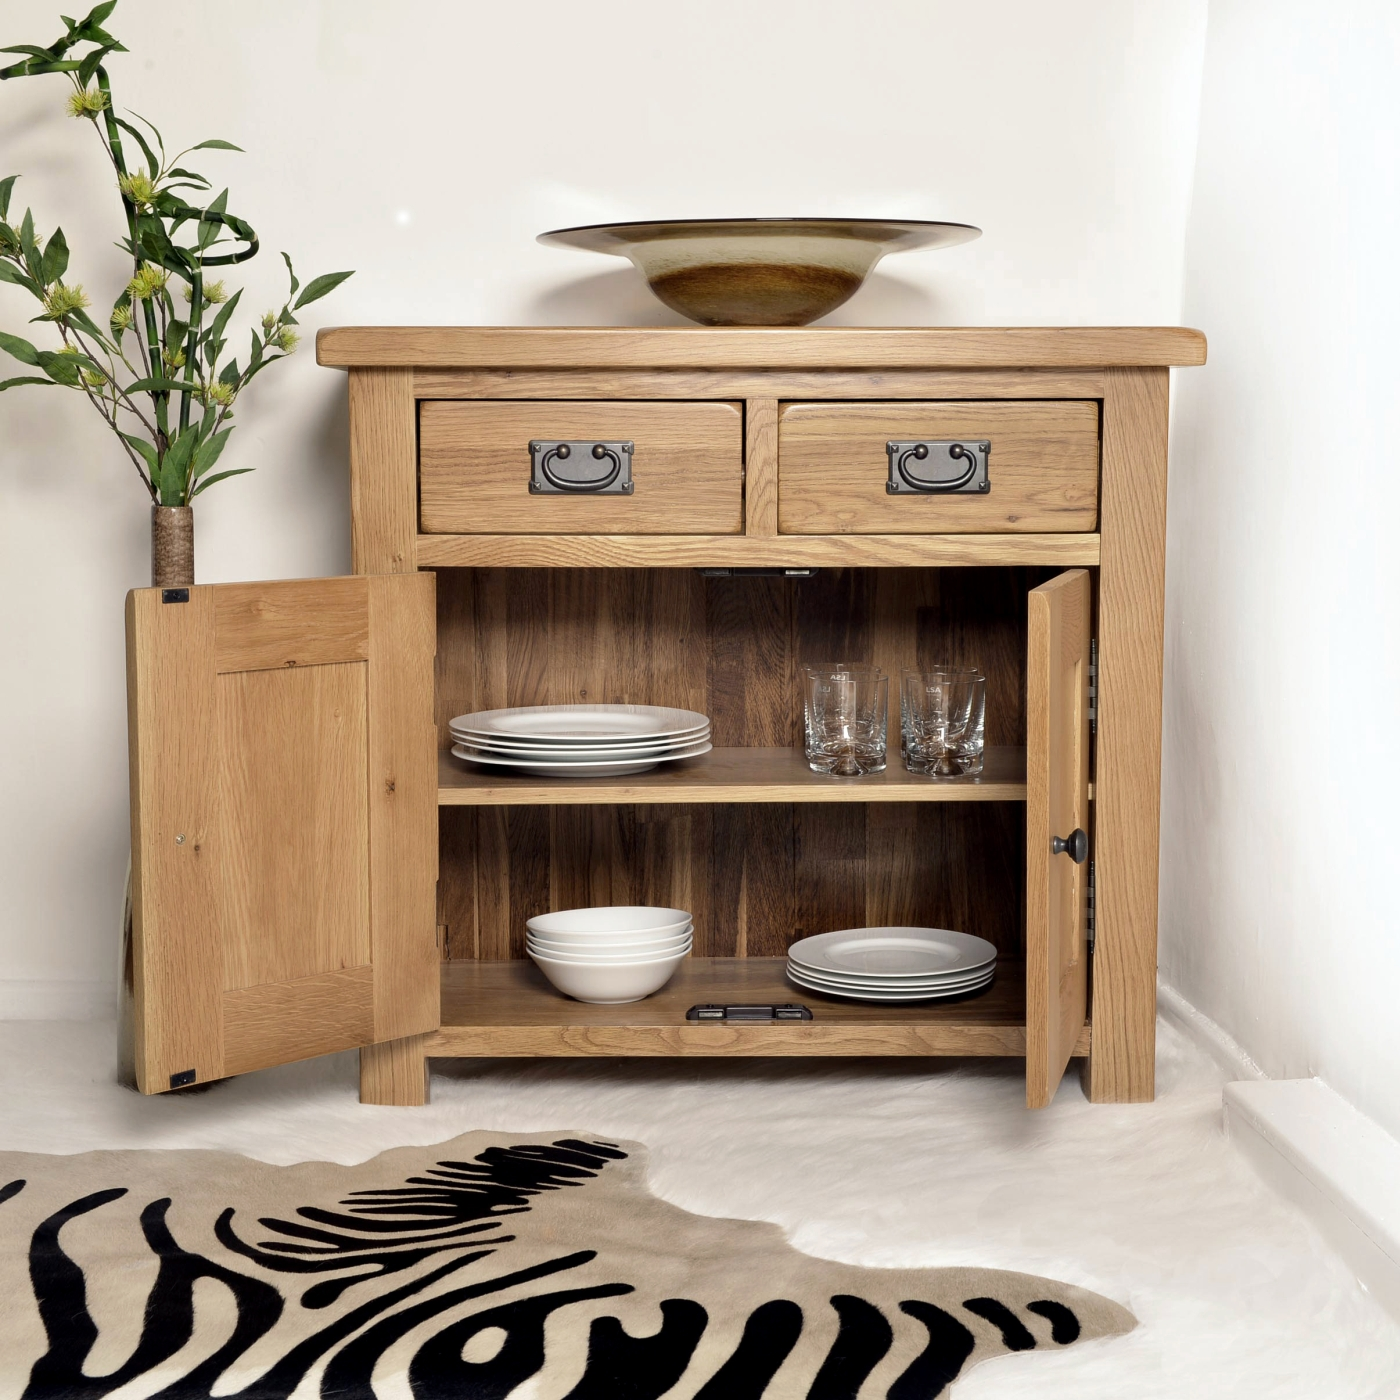 solid oak sideboard small buffet dining living room rustic